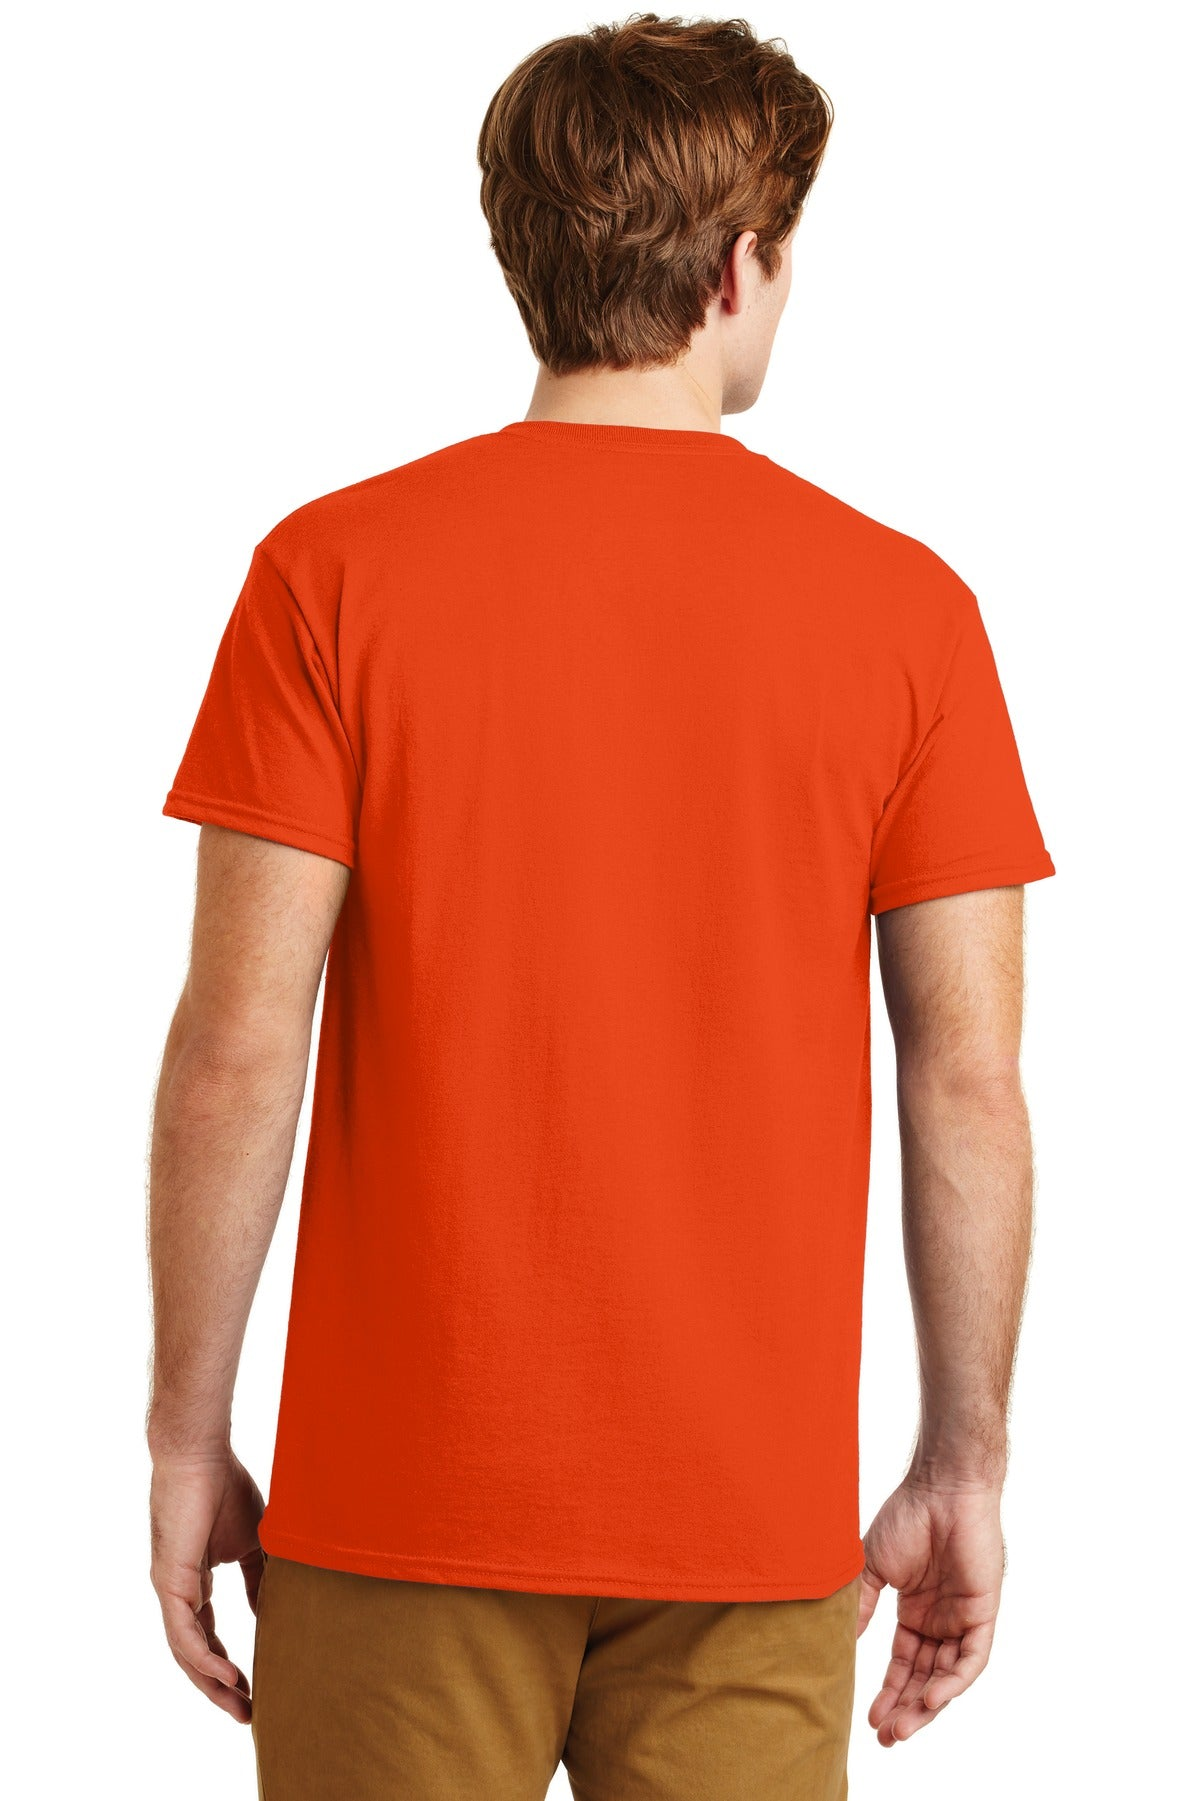 Orange Gildan DryBlend 50 Cotton/50 Poly Pocket T-Shirt.